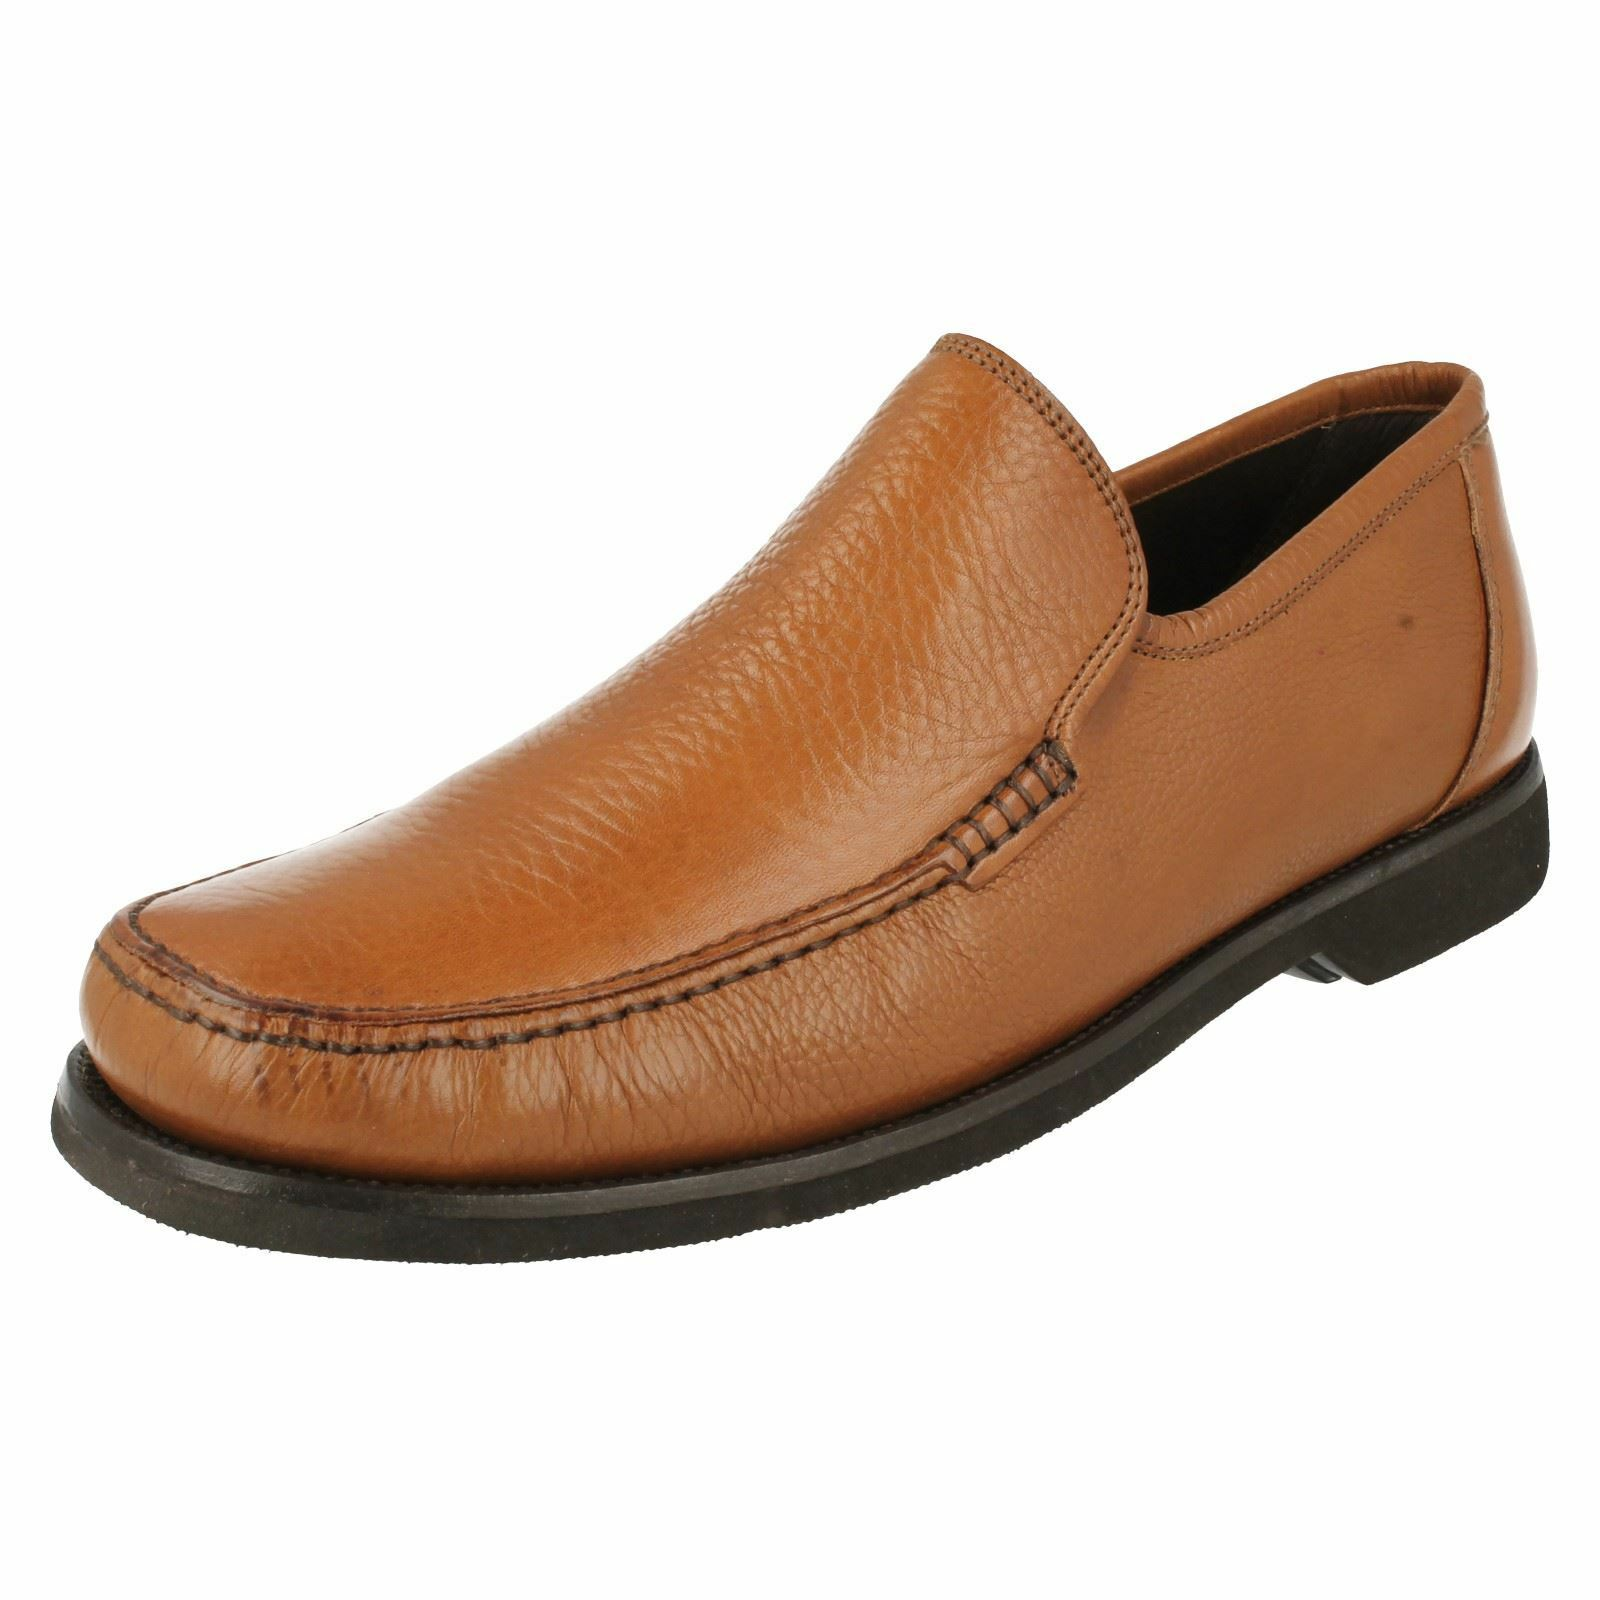 Mens Anatomic Smart Slip On Moccasin Shoes Angra